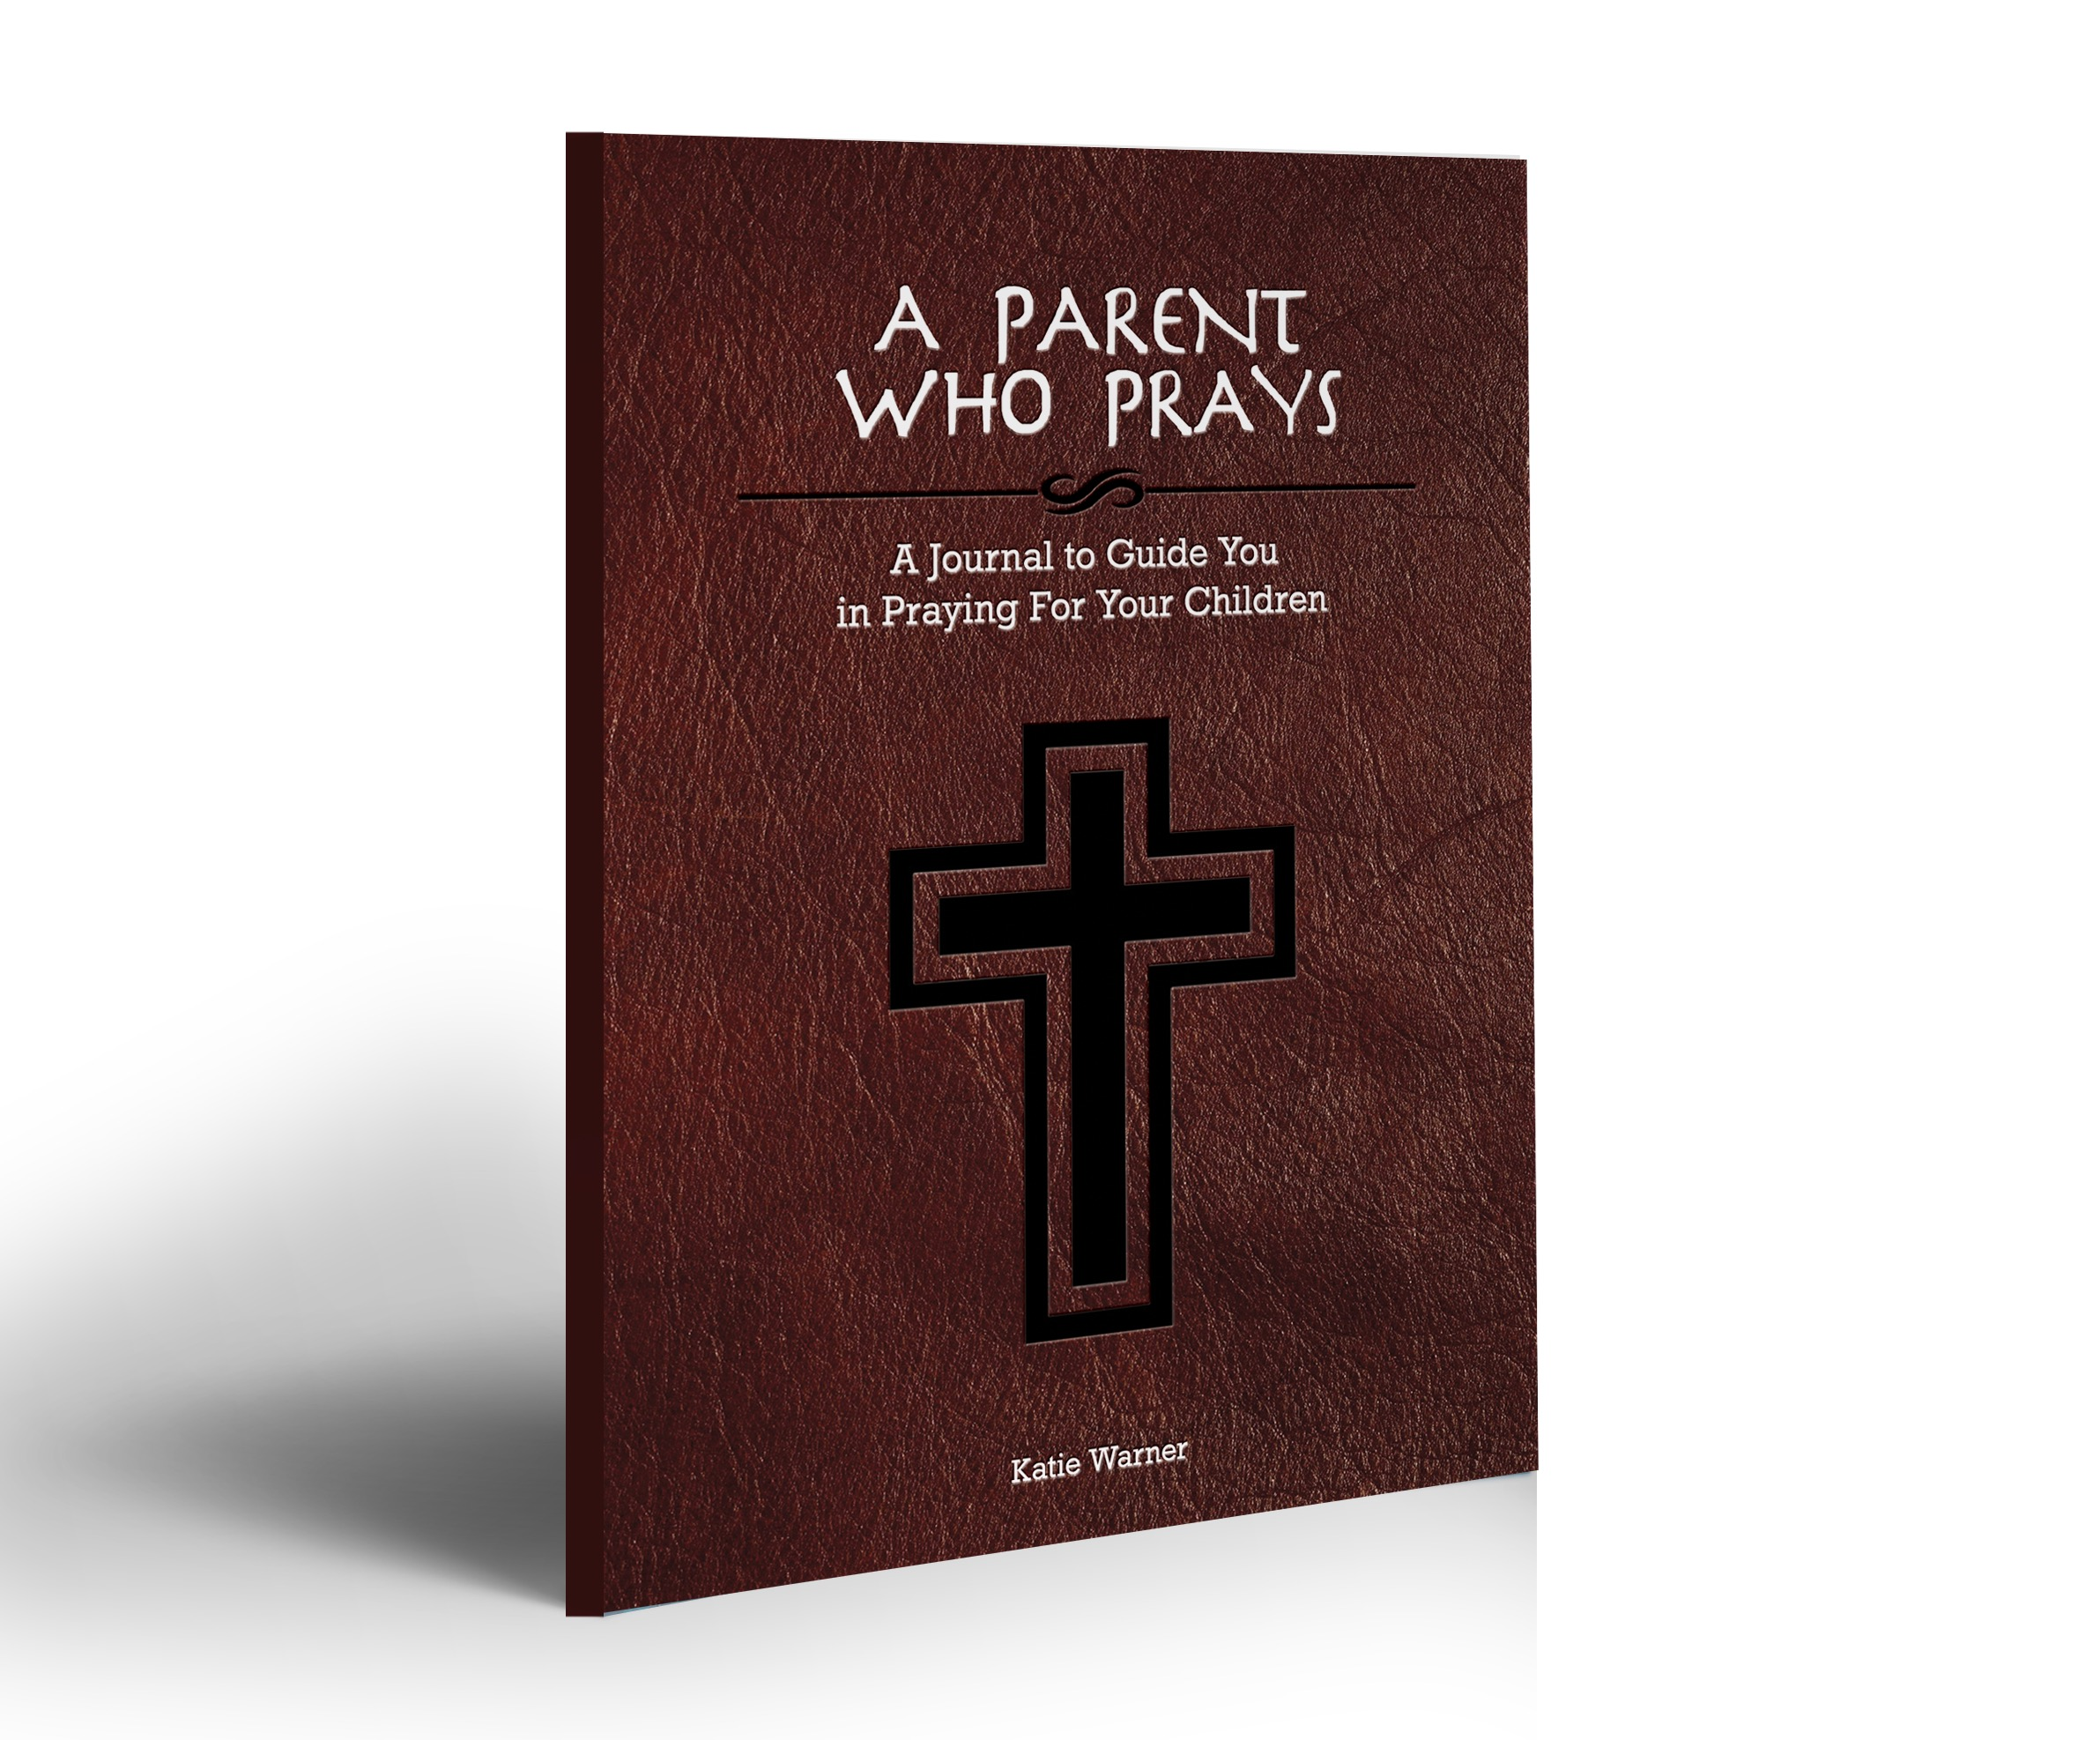 A Parent Who Prays – Now Available!